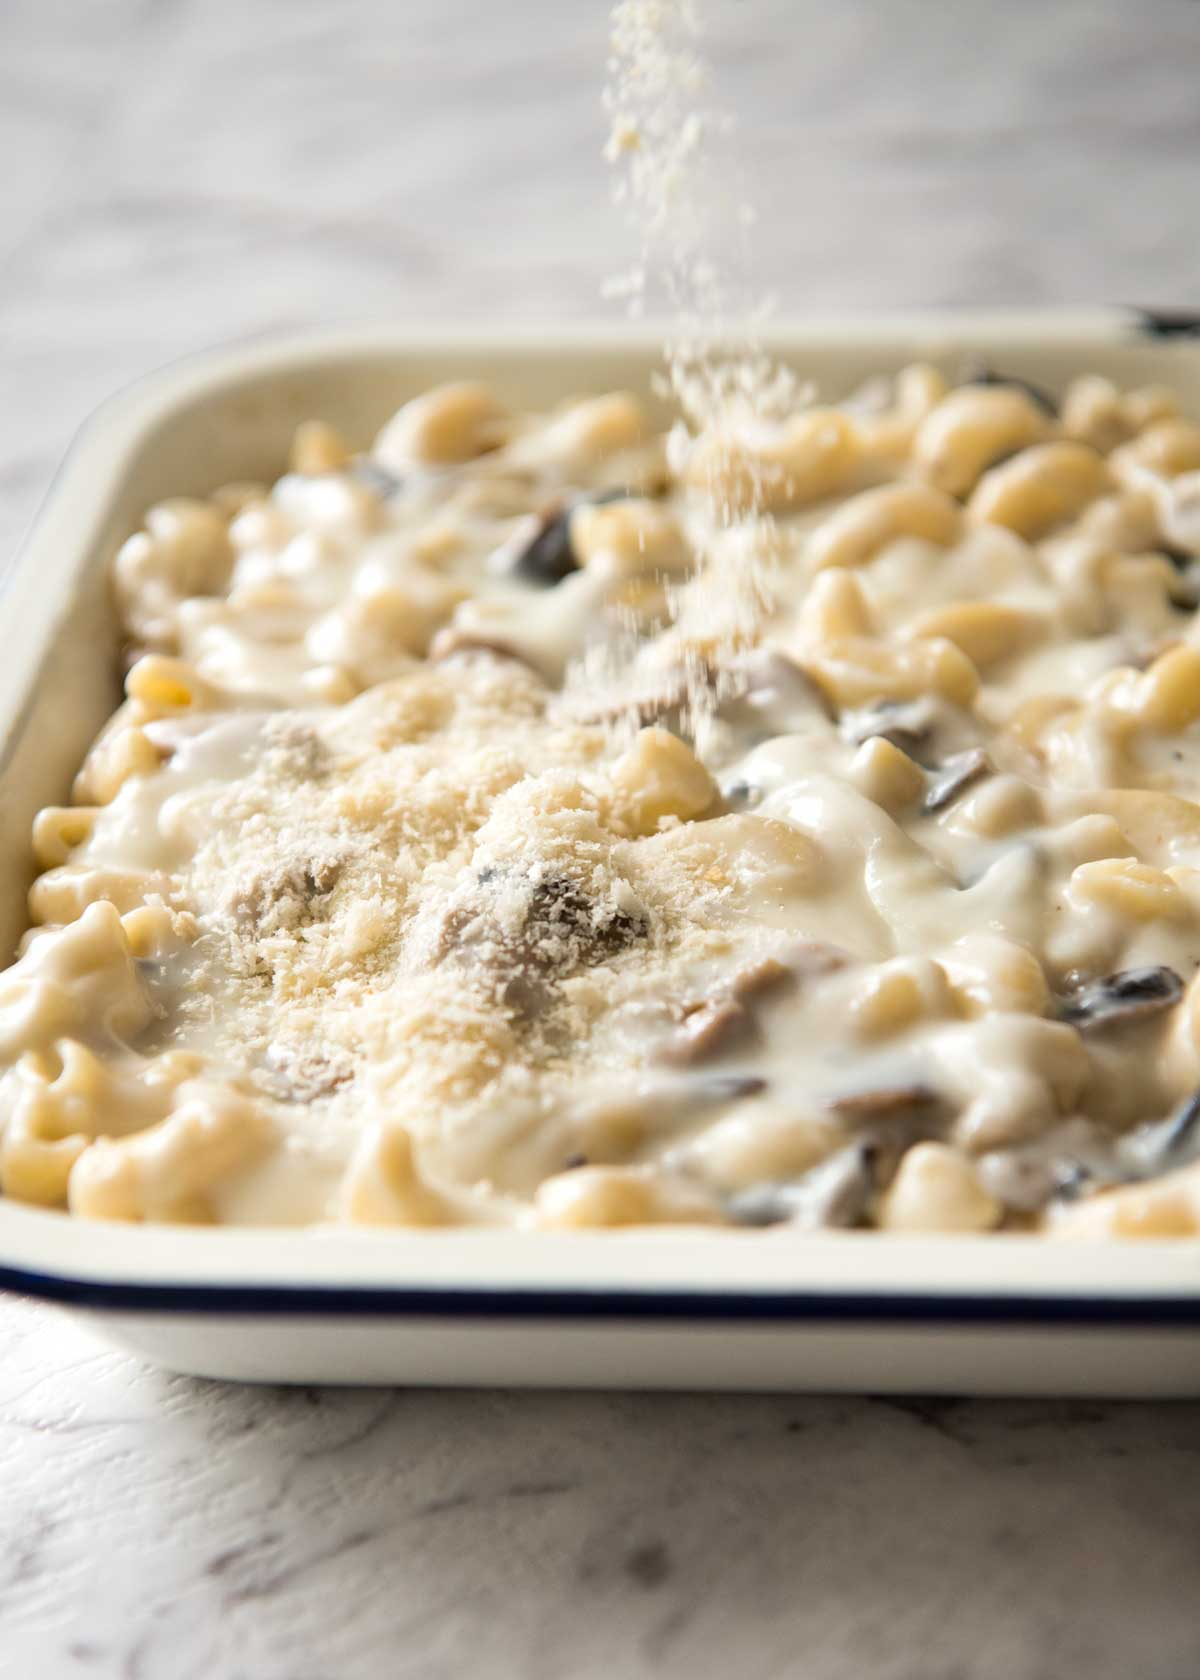 Chicken Macaroni Gratin - A classic Japanese comfort food, this is a creamy pasta bake made with macaroni, chicken, mushrooms and a creamy béchamel sauce. www.japan.recipetineats.com